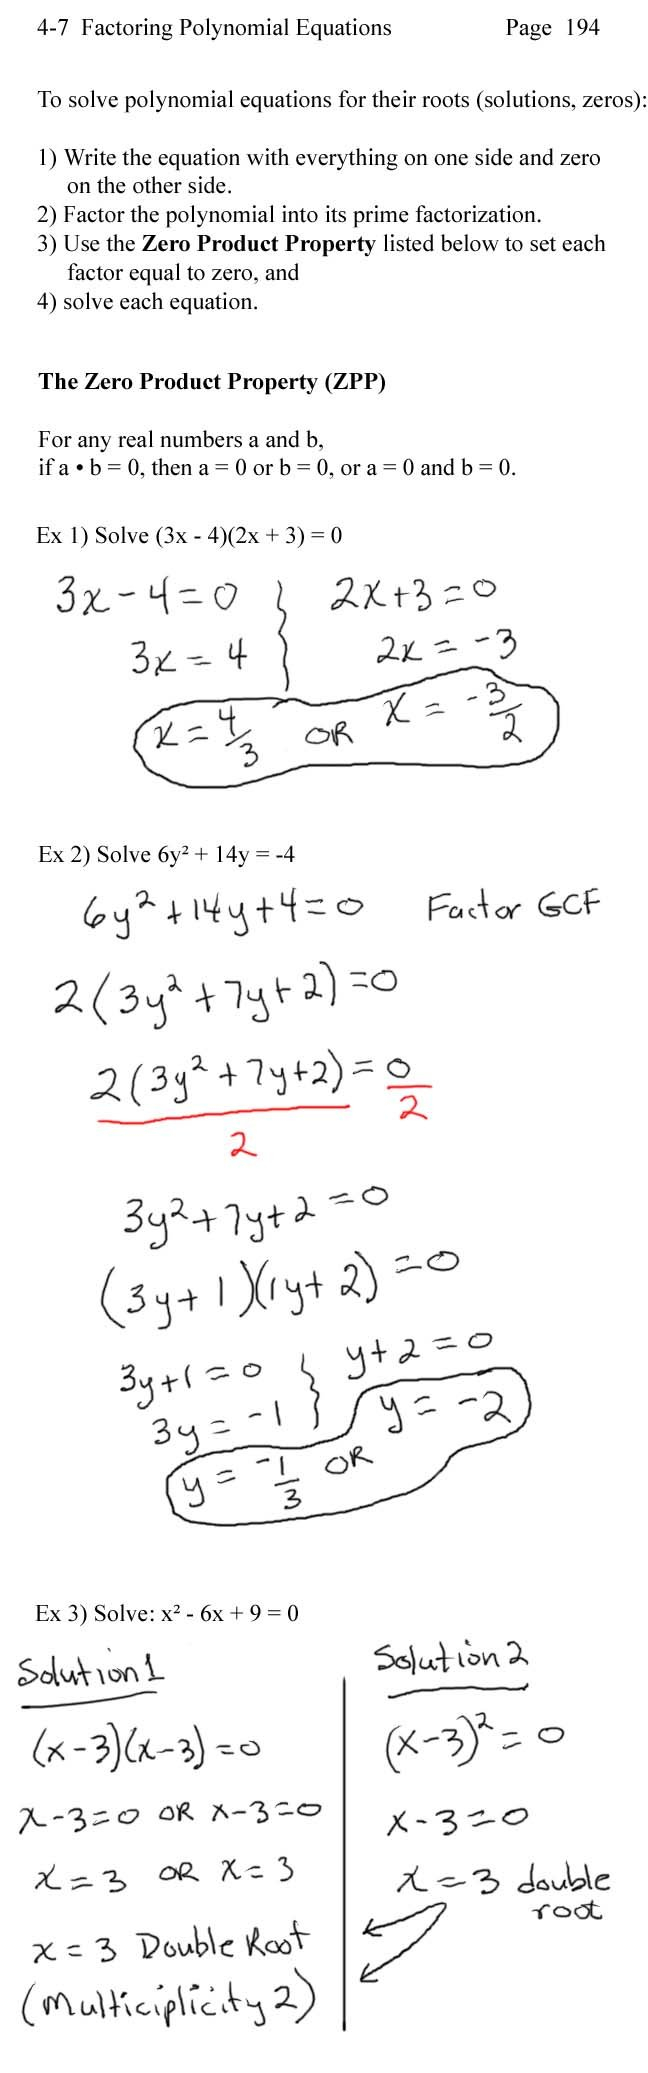 Lecture Notes Along With Solving Polynomial Equations Worksheet Answers